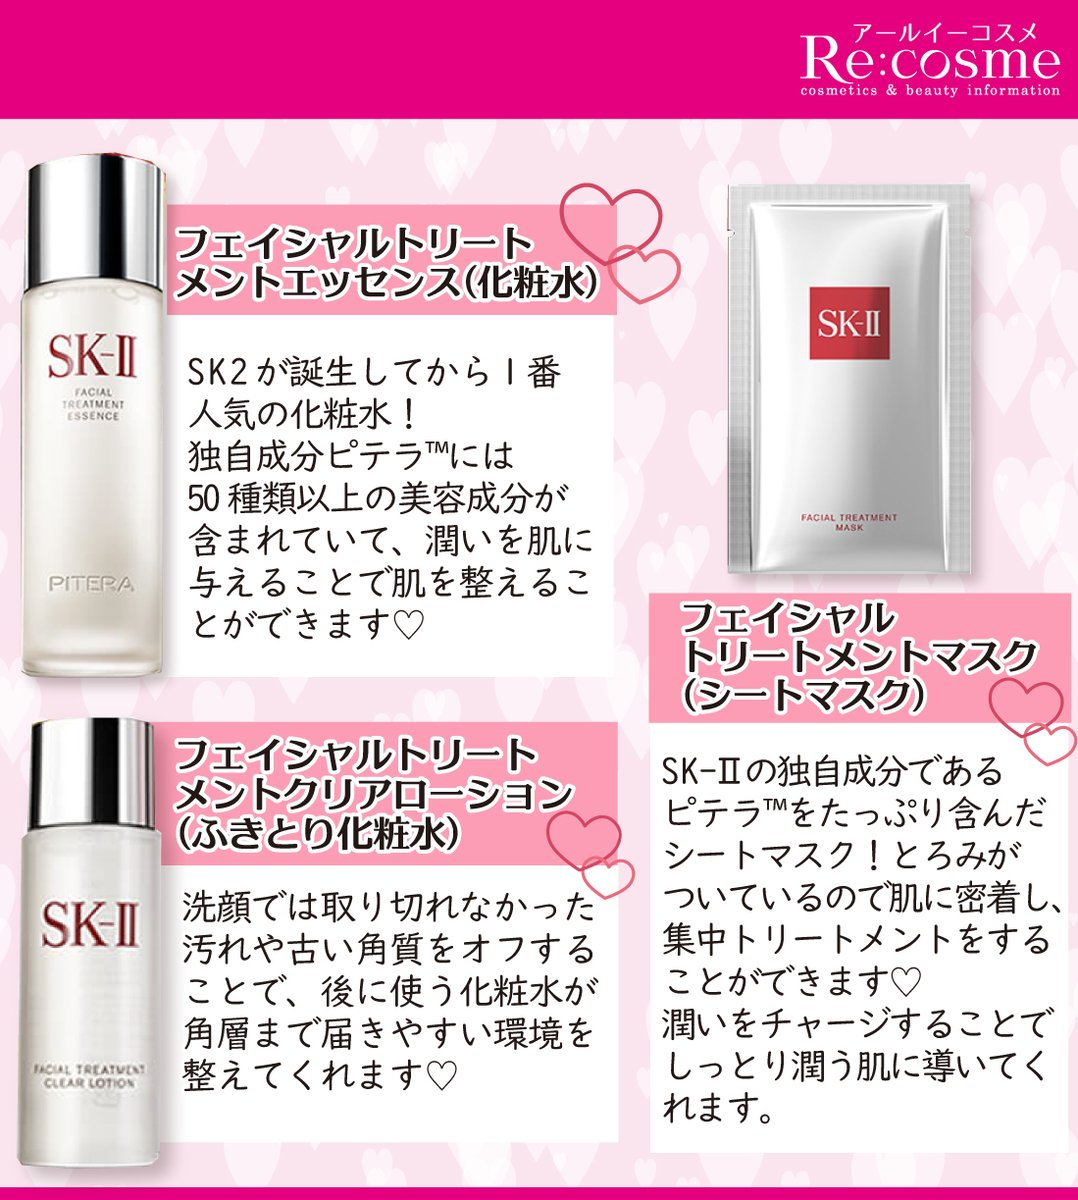 Re:cosme(アールイーコスメ) 公式 がんばる女子の美肌計画さんの投稿画像